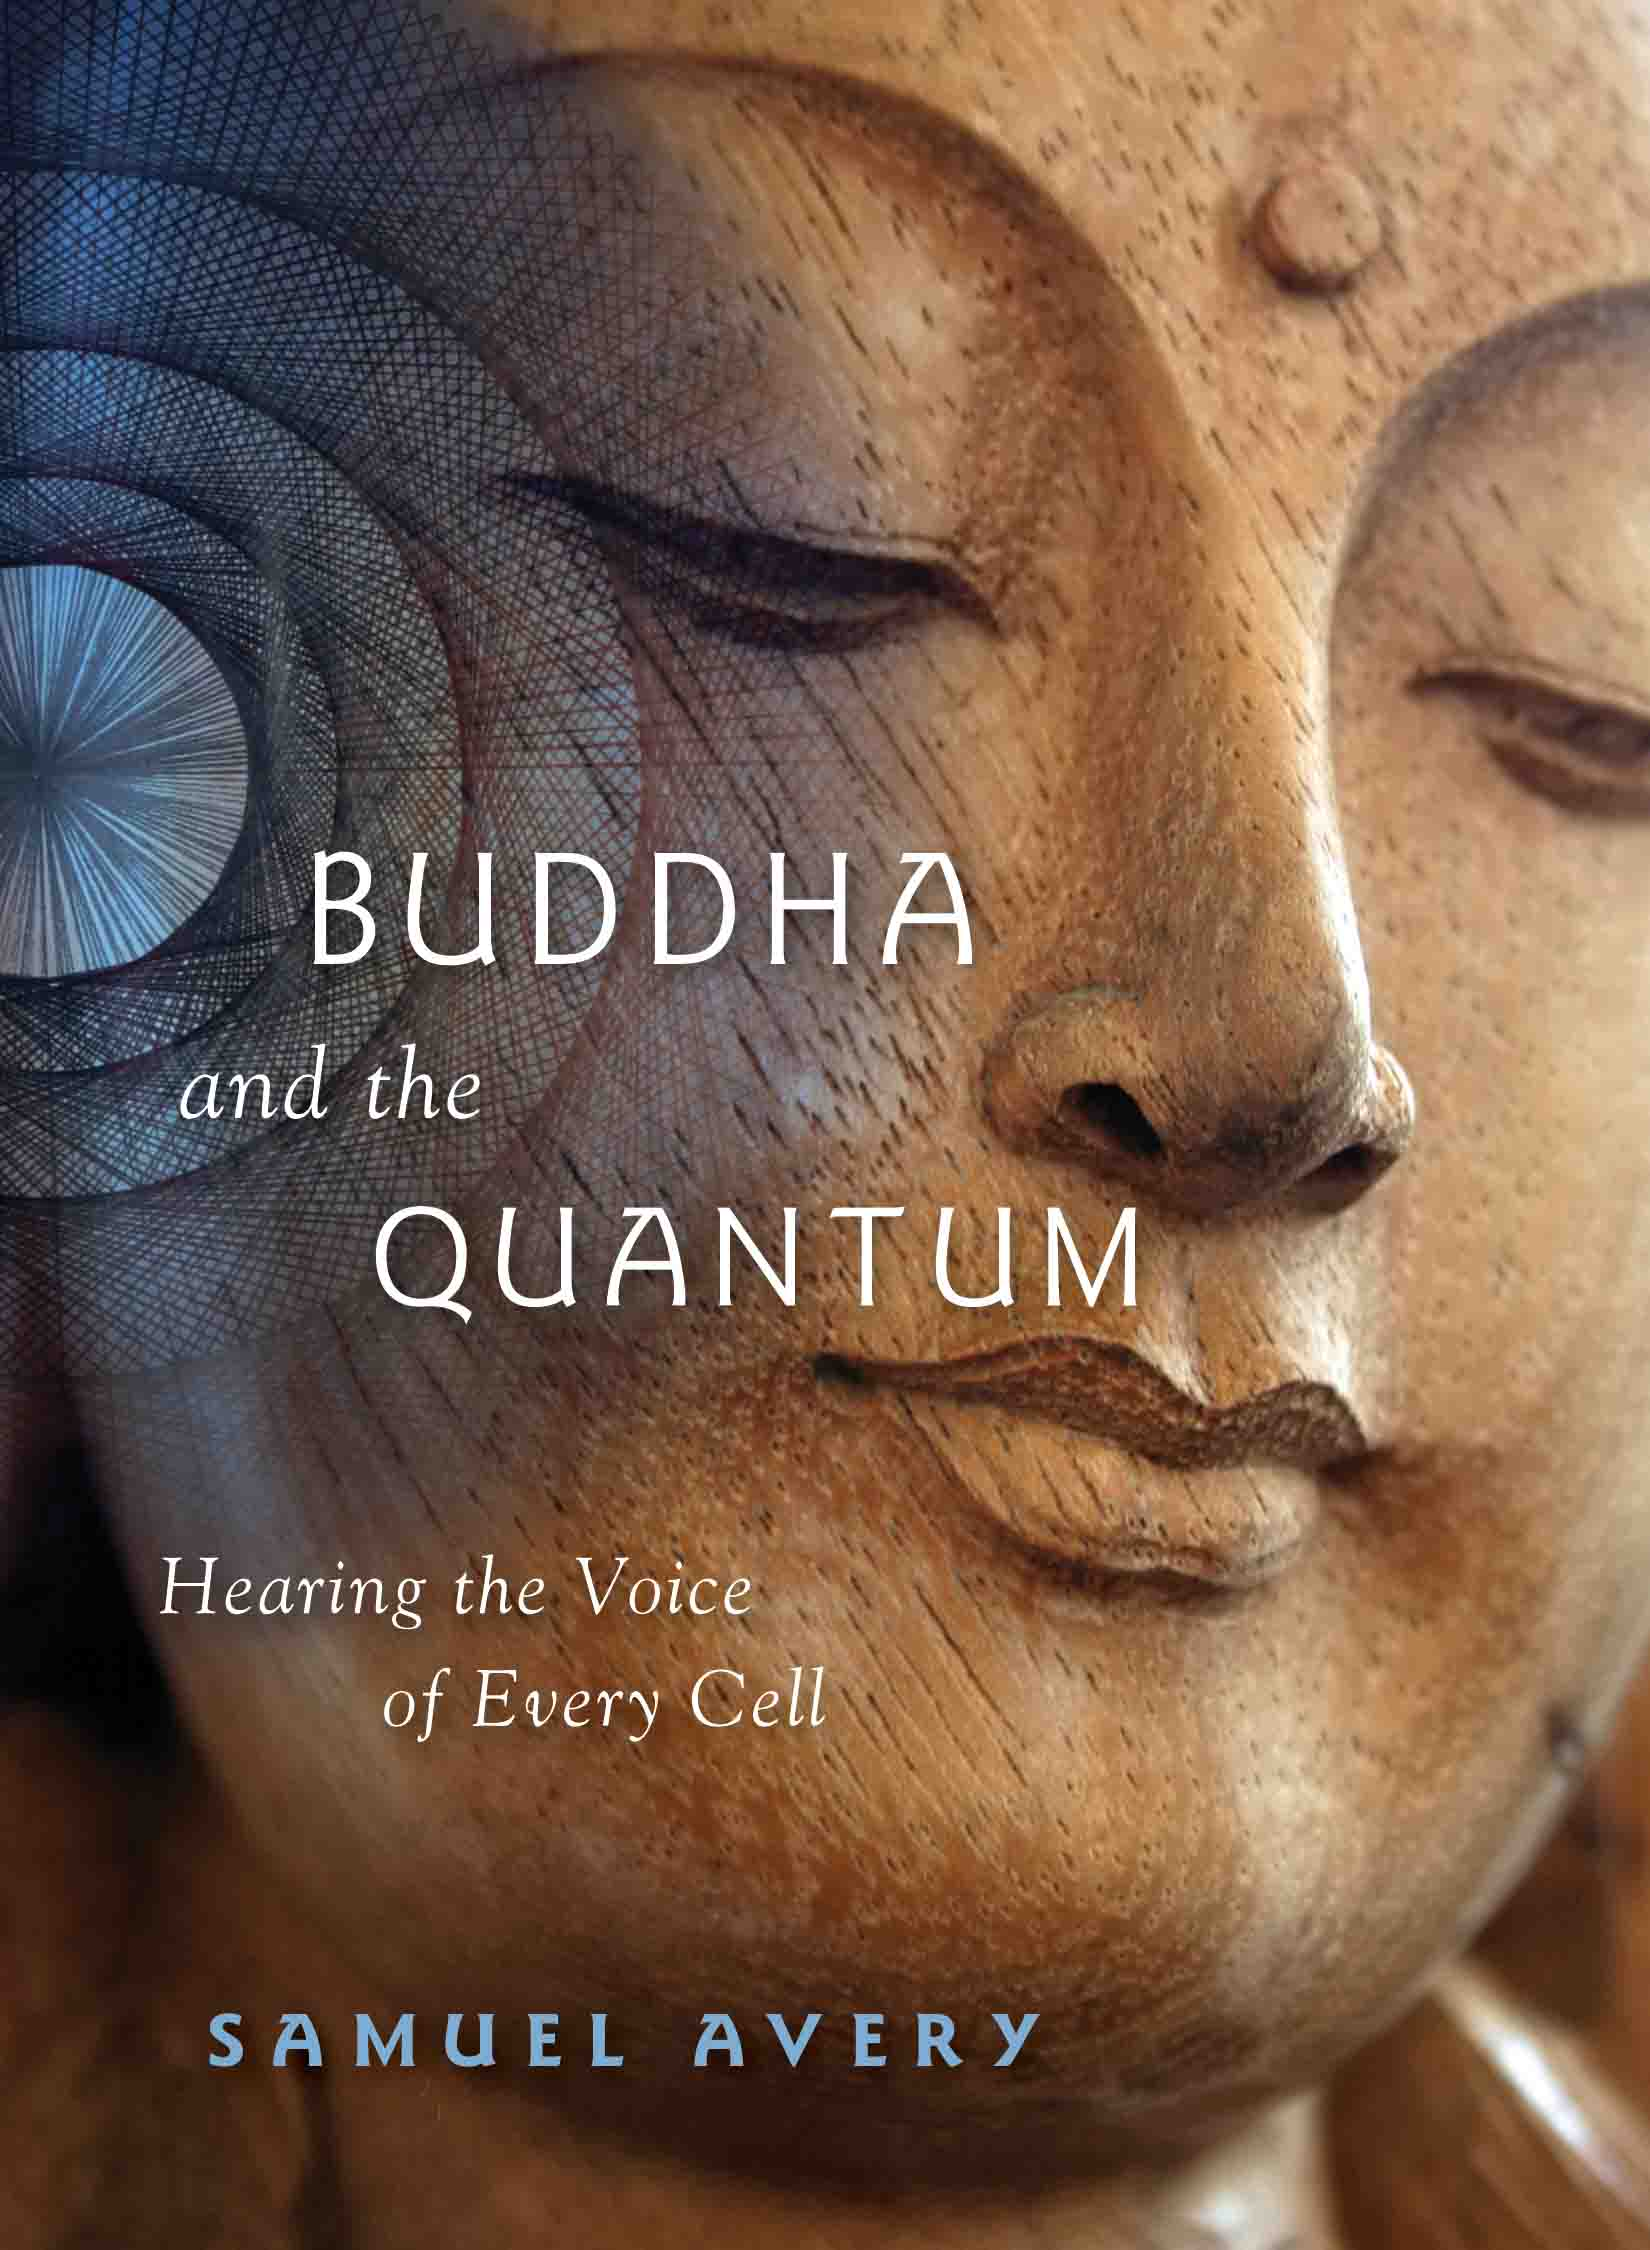 Buddha and the Quantum